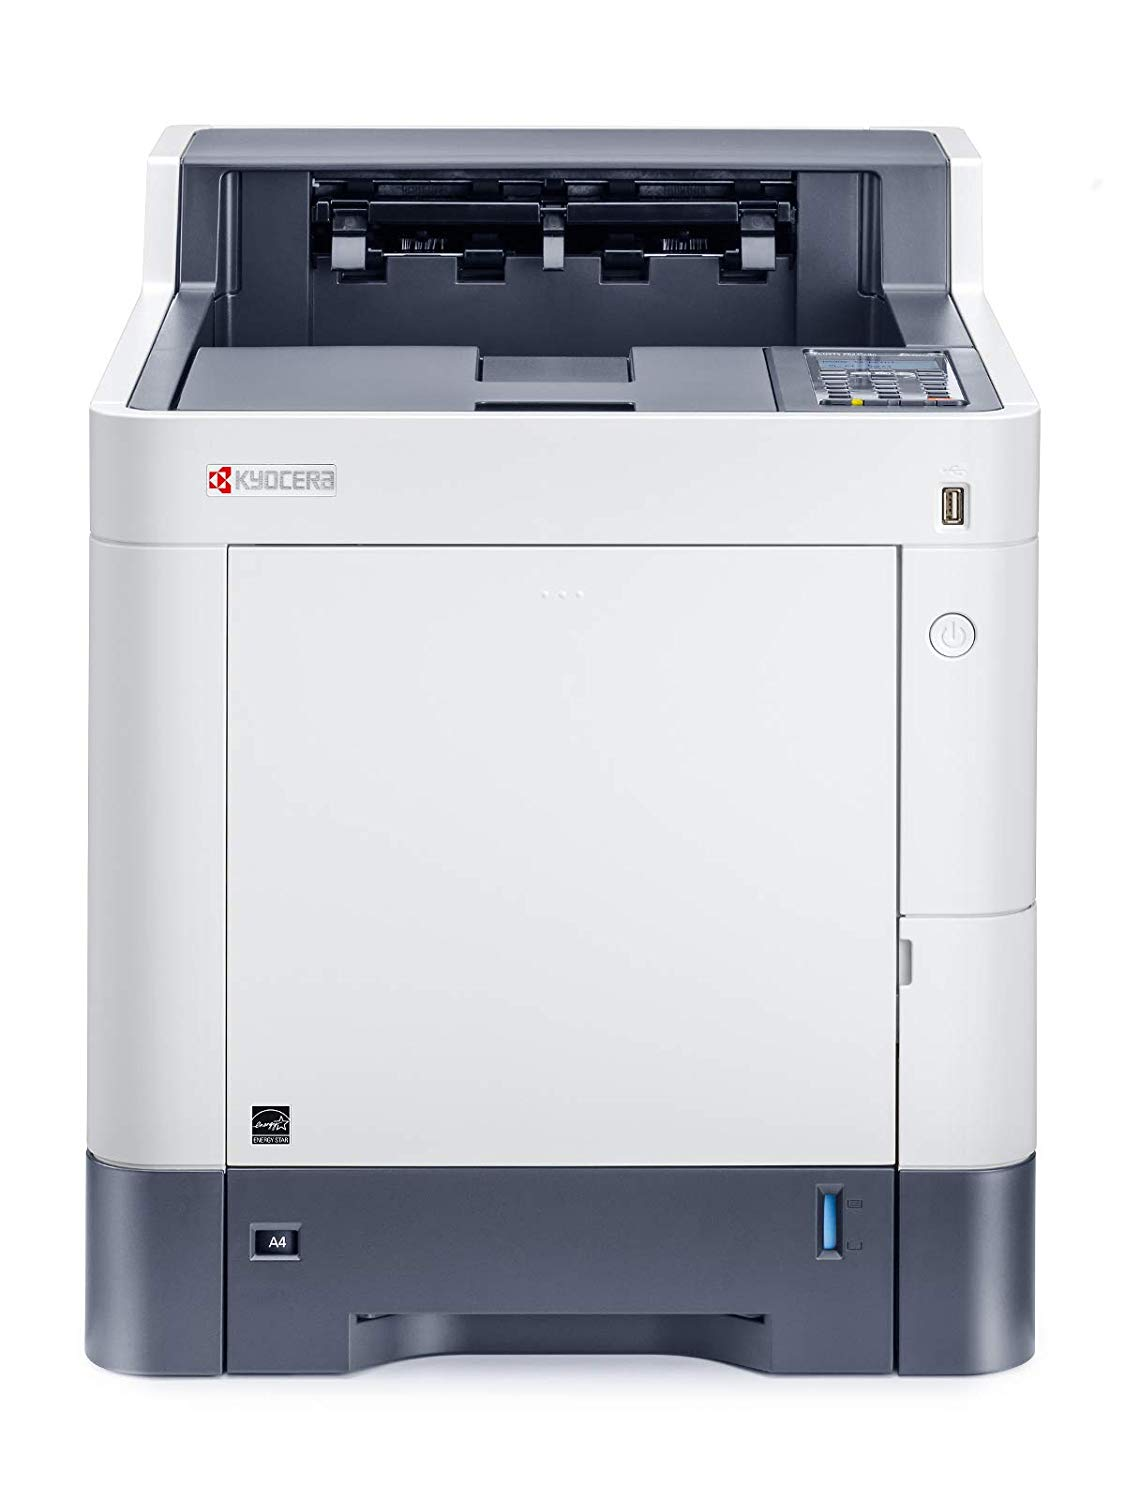 Kyocera, ECOSYS, P6230CDN, A4, 30PPM, Colour, Laser, Printer,